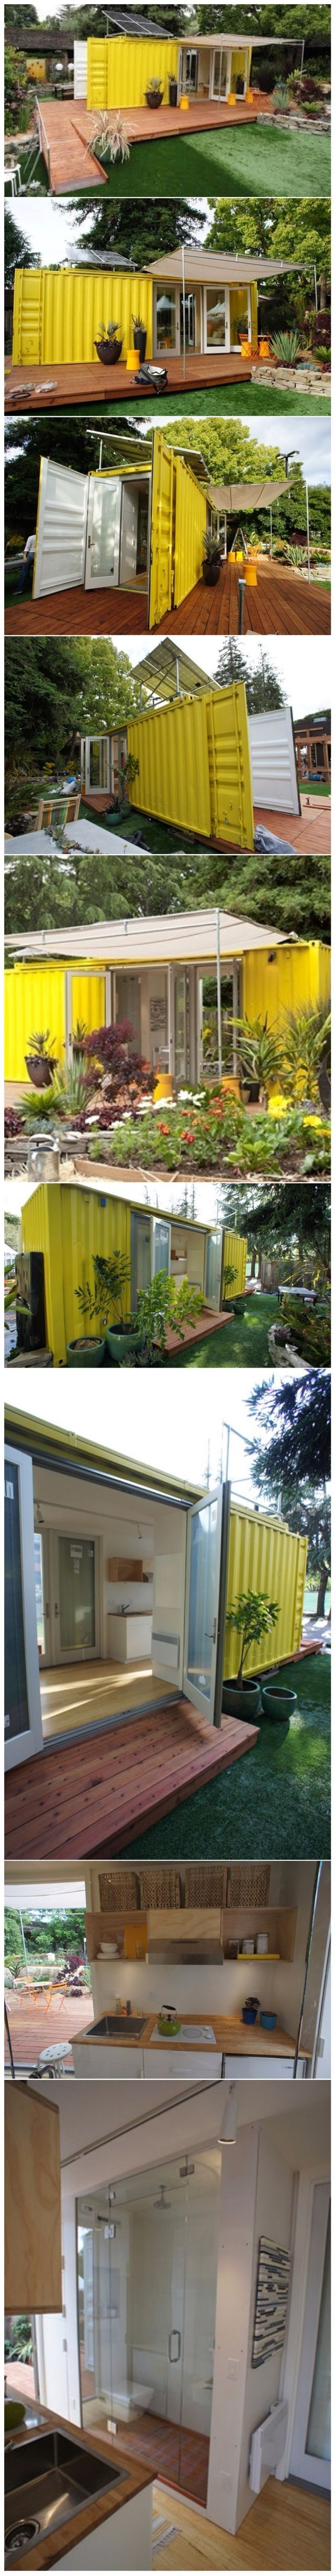 Container House - 7808bf5564957d35f7d8d7ea571396fc.jpg 640×4,918 pixels - Who Else Wants Simple Step-By-Step Plans To Design And Build A Container Home From Scratch?